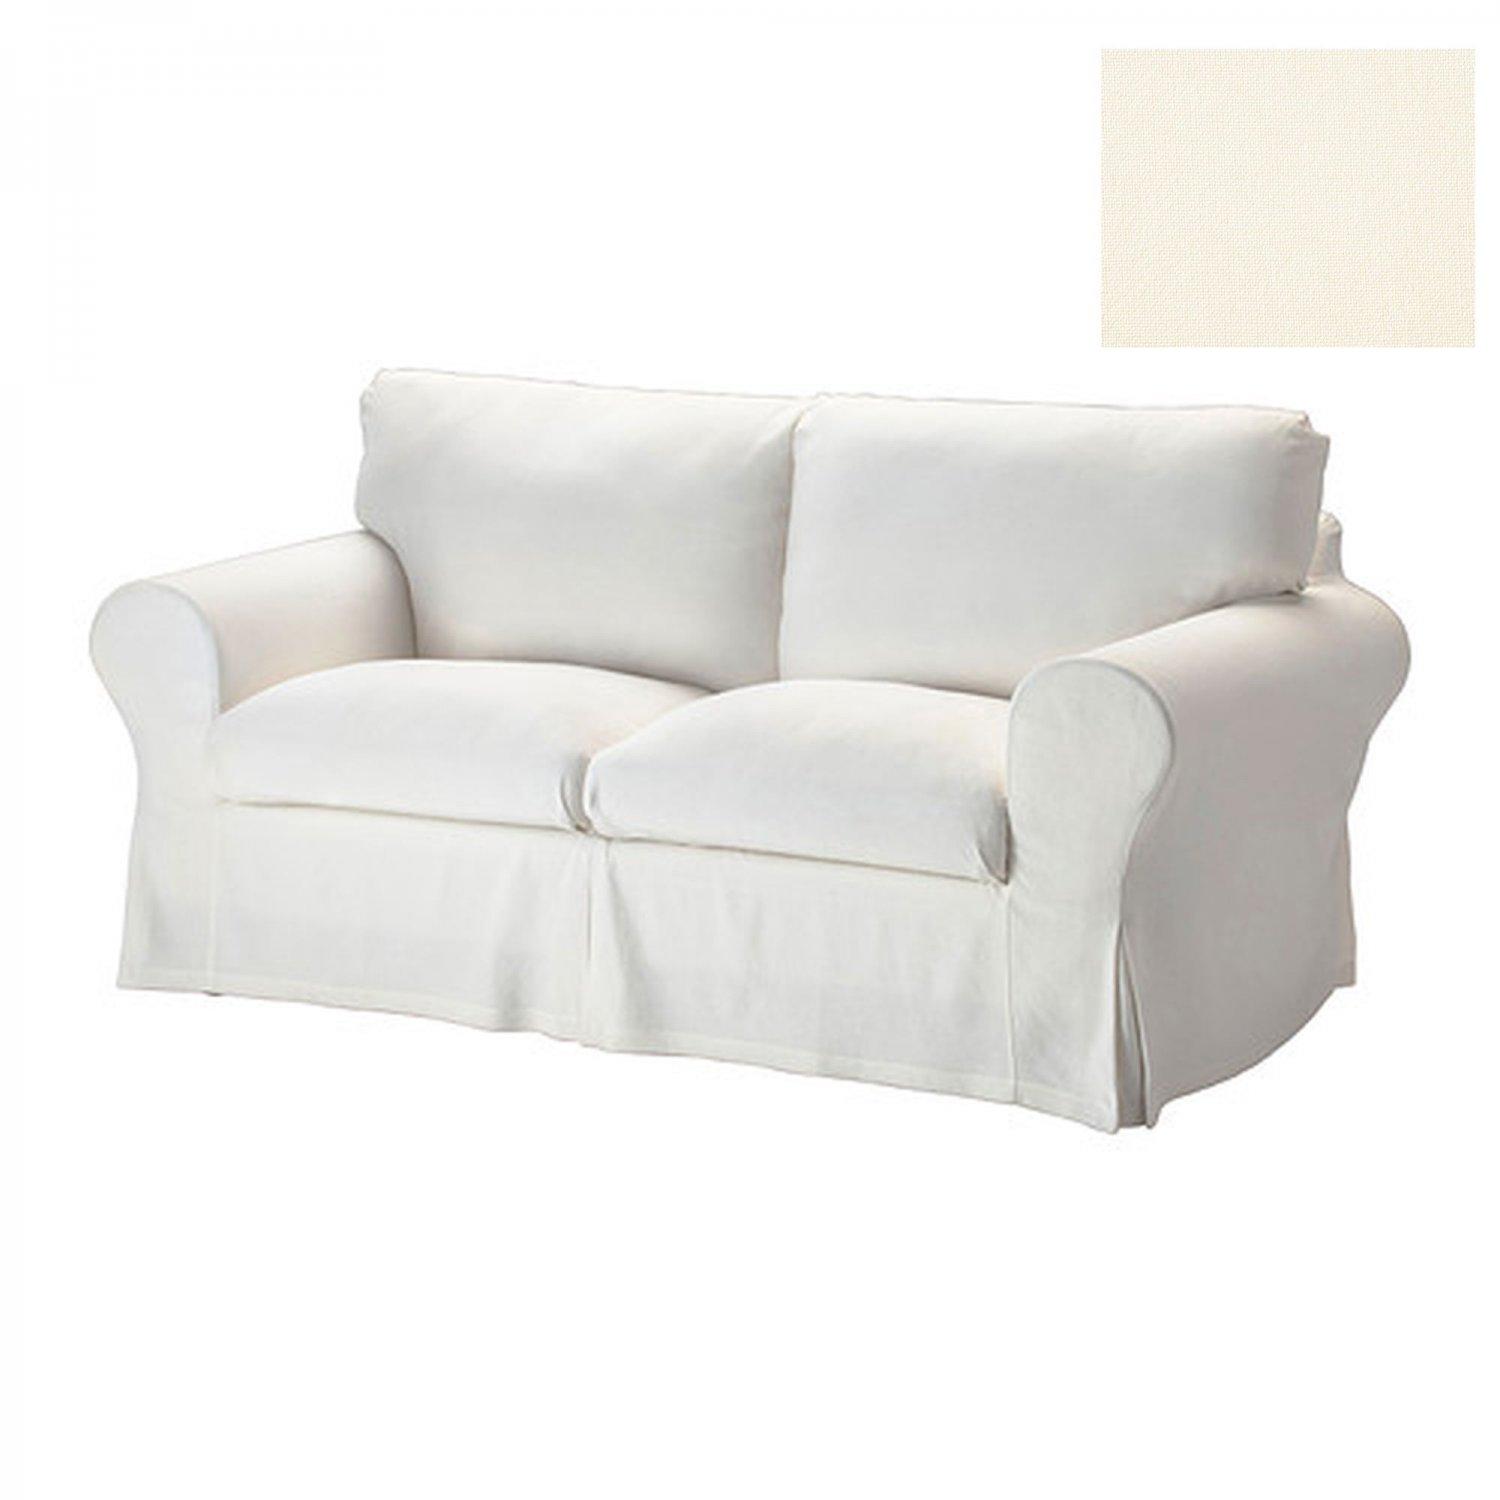 Ikea ektorp 2 seat sofa slipcover loveseat cover stenasa white off white sten sa linen blend Loveseat slip cover